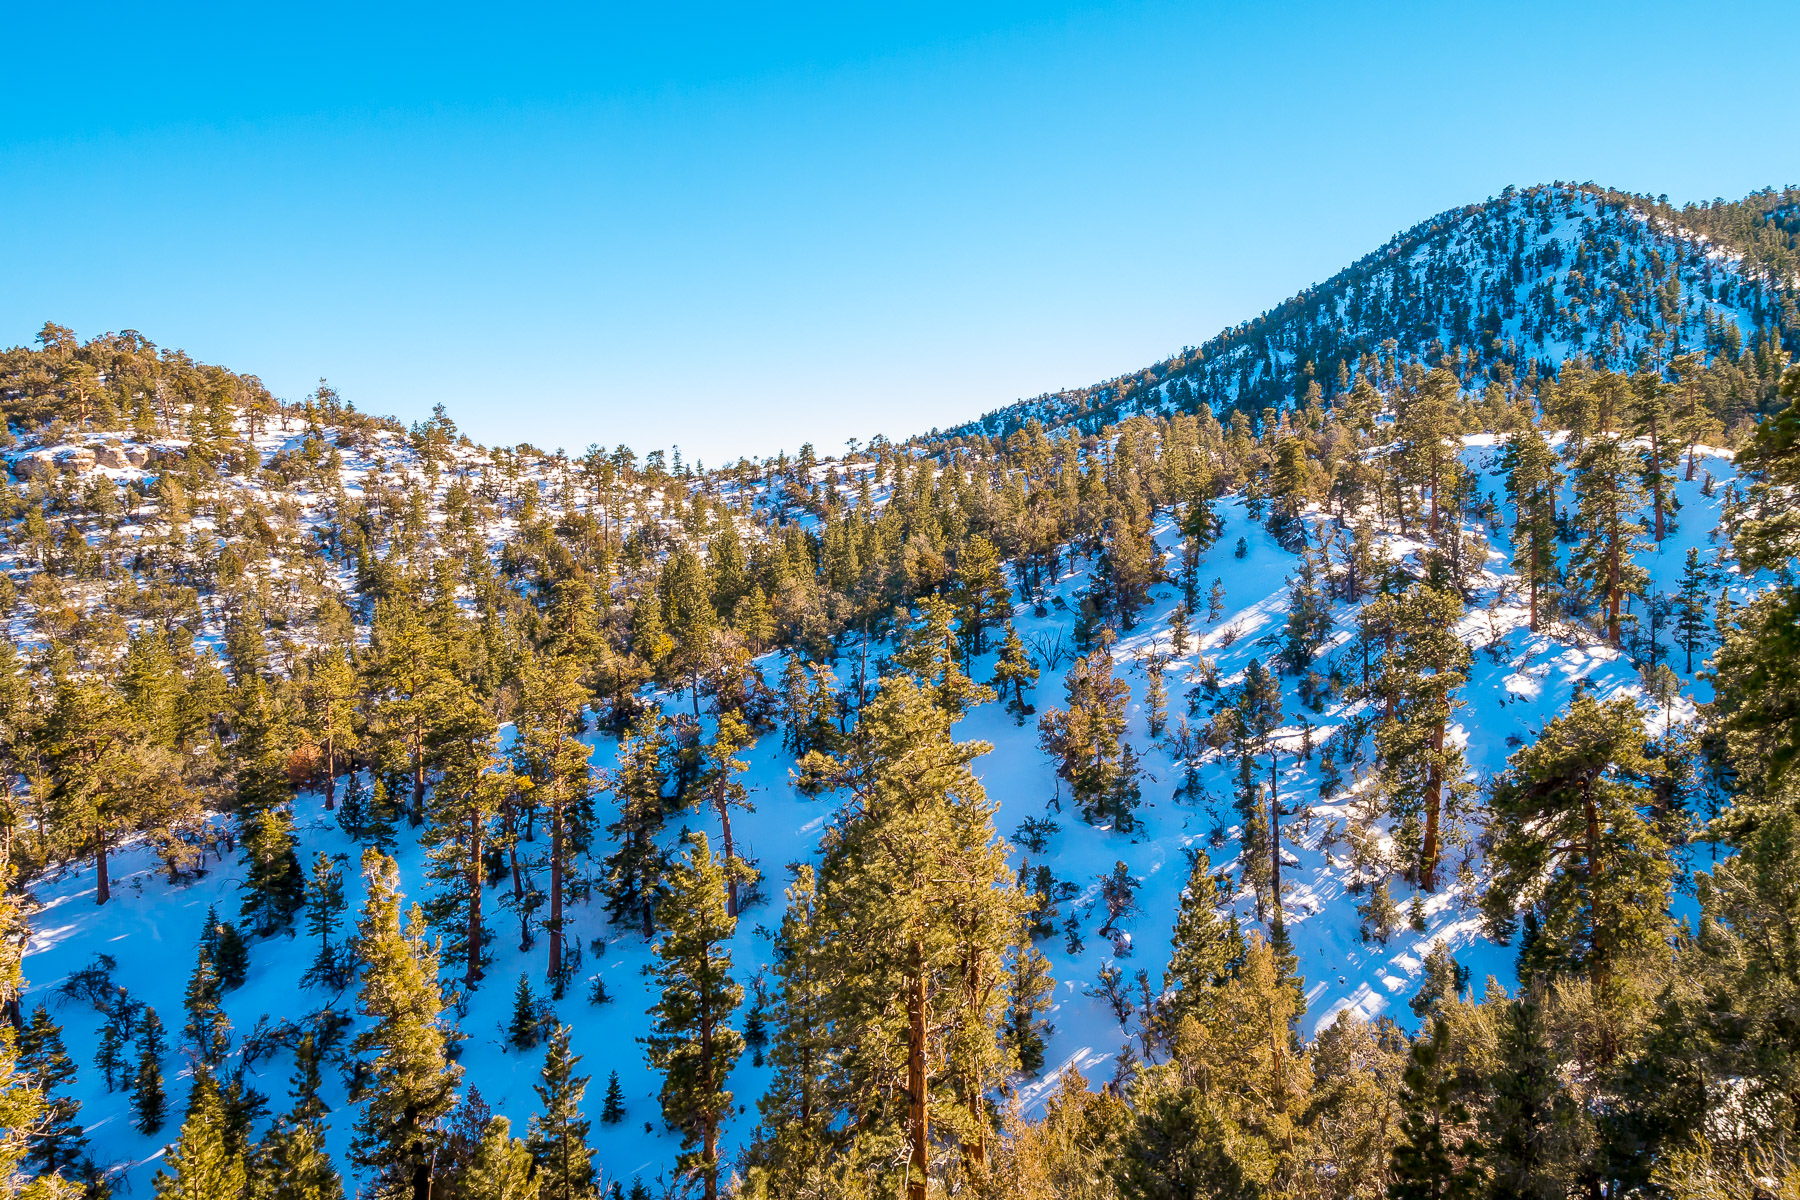 Snow and trees cover the foothills of Nevada's Mount Charleston.